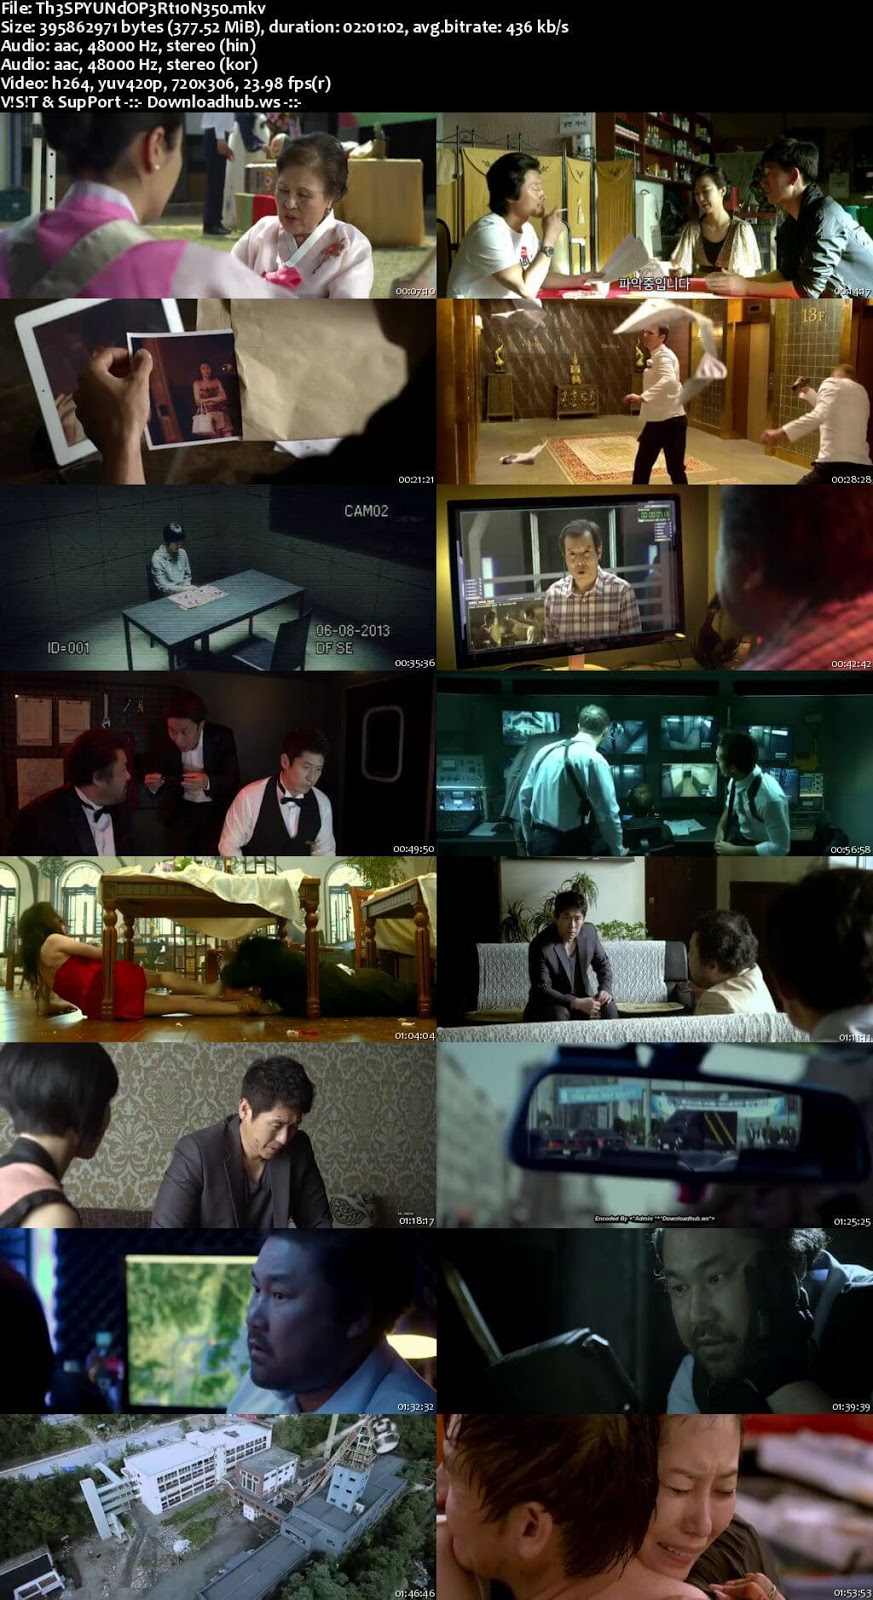 The Spy Undercover Operation 2013 Hindi